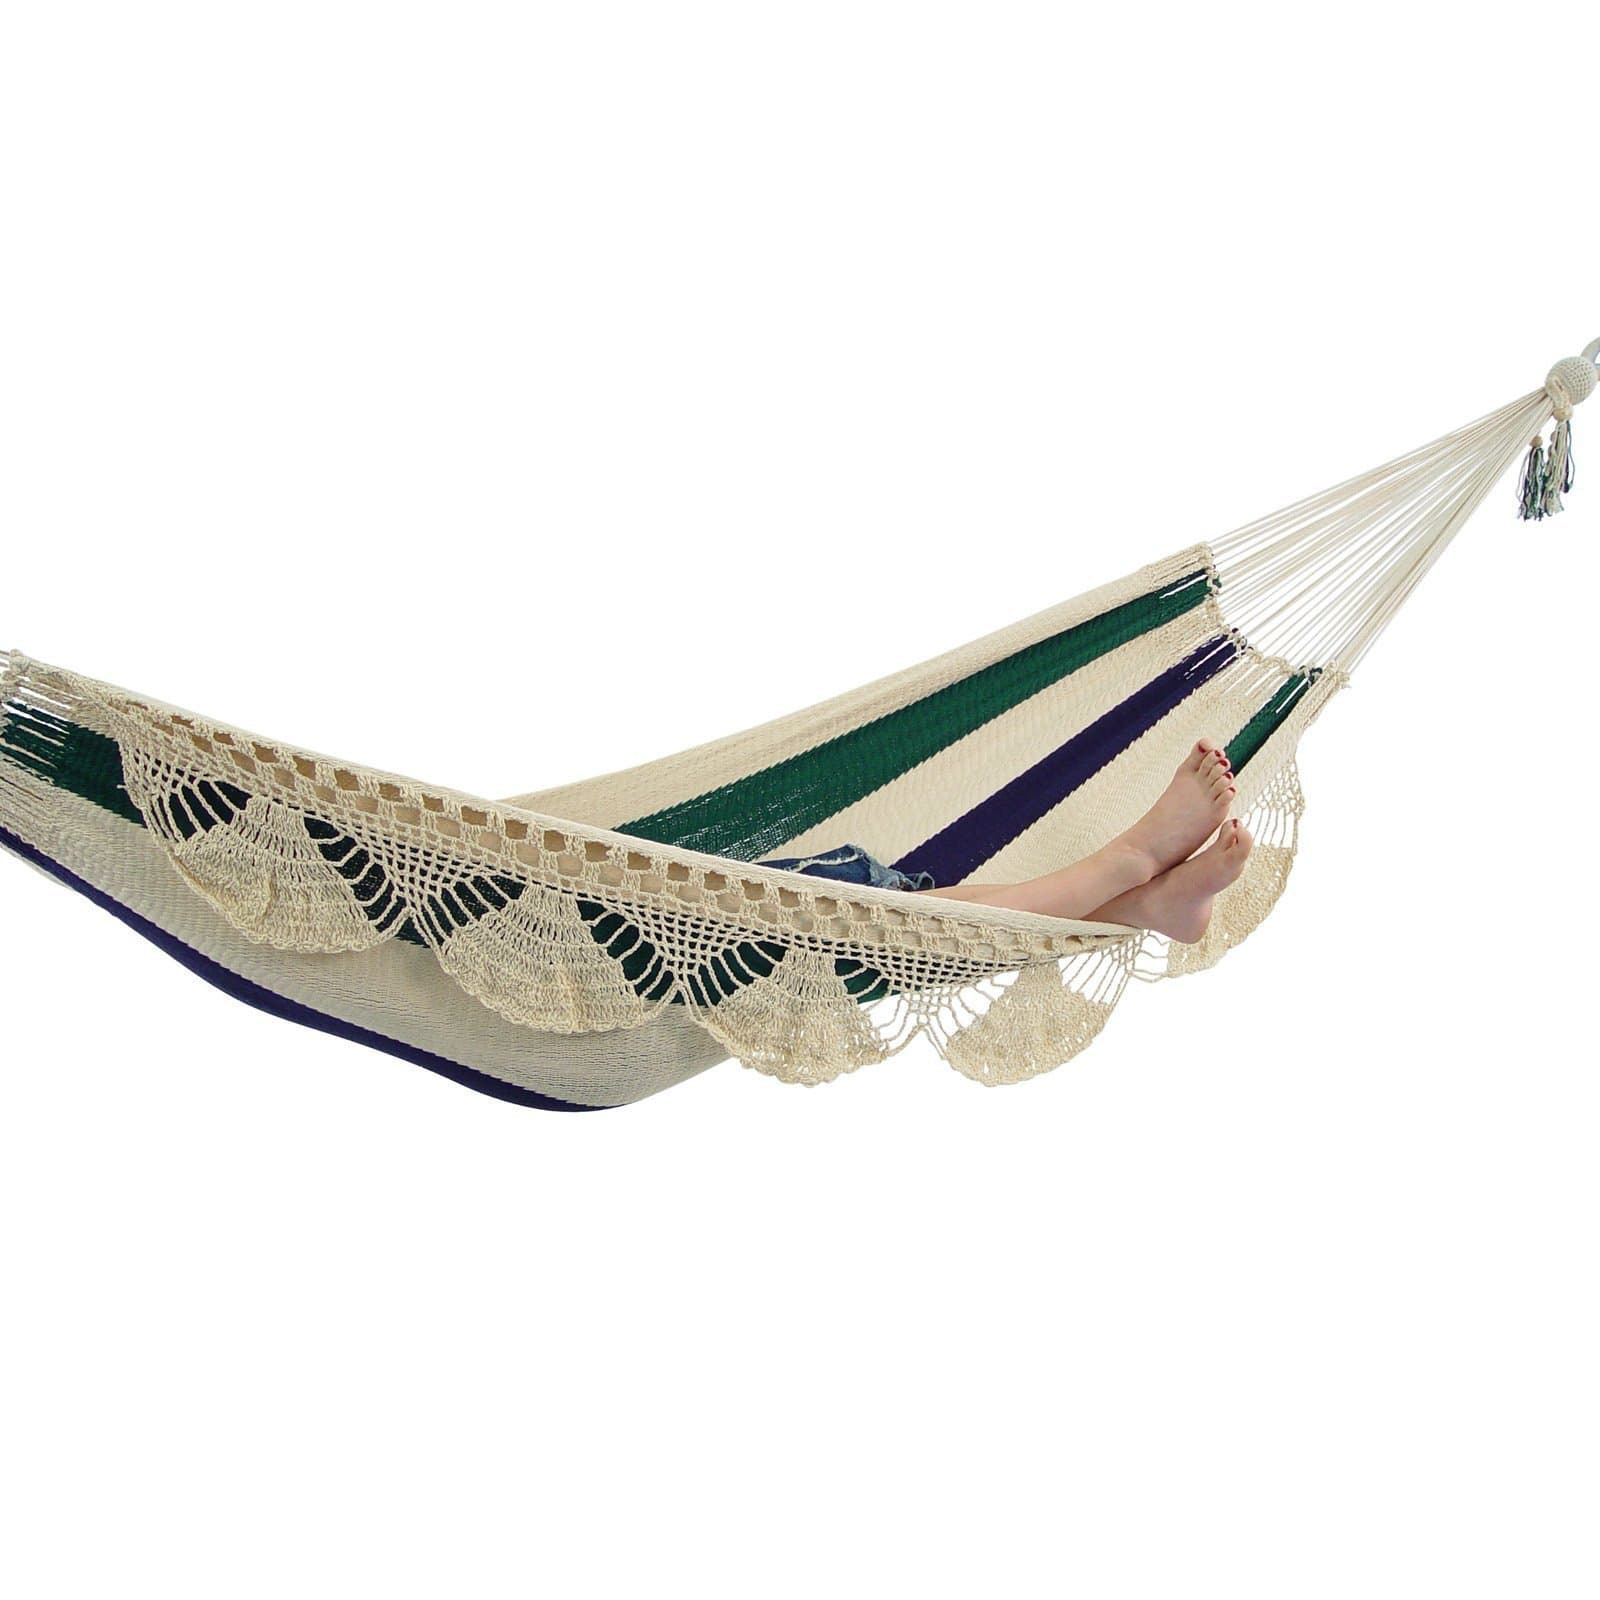 Nicaraguan Hammock with Eco-Friendly Bamboo Stand - Hammock Universe Canada